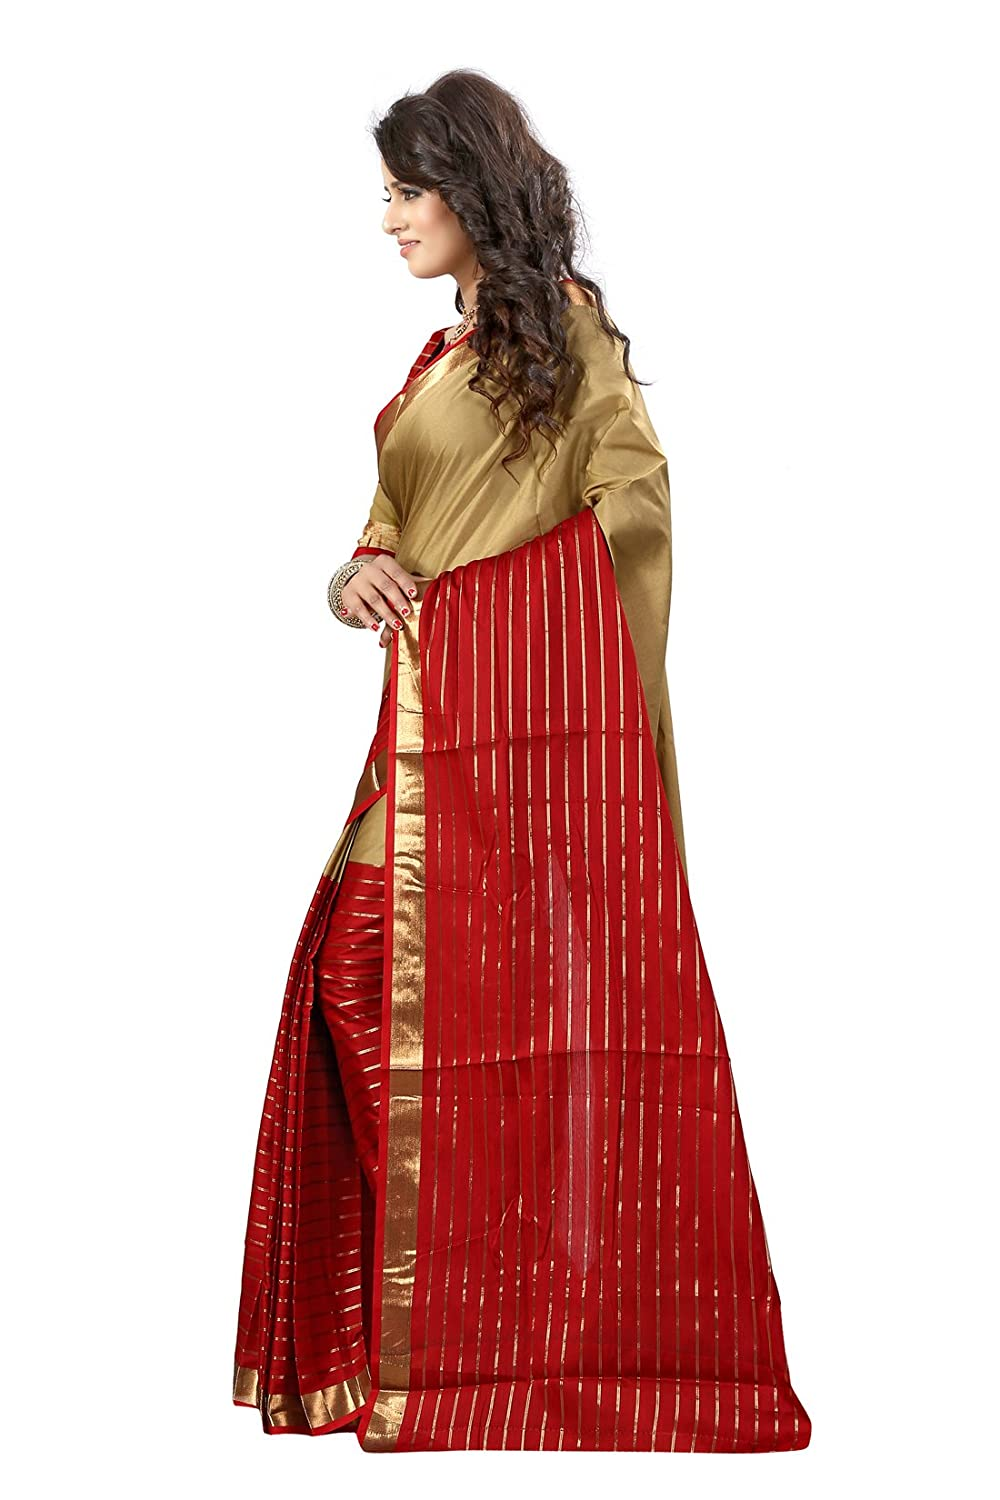 Beige and Maroon Color Banarasi Cotton with Blouse Piece Saree